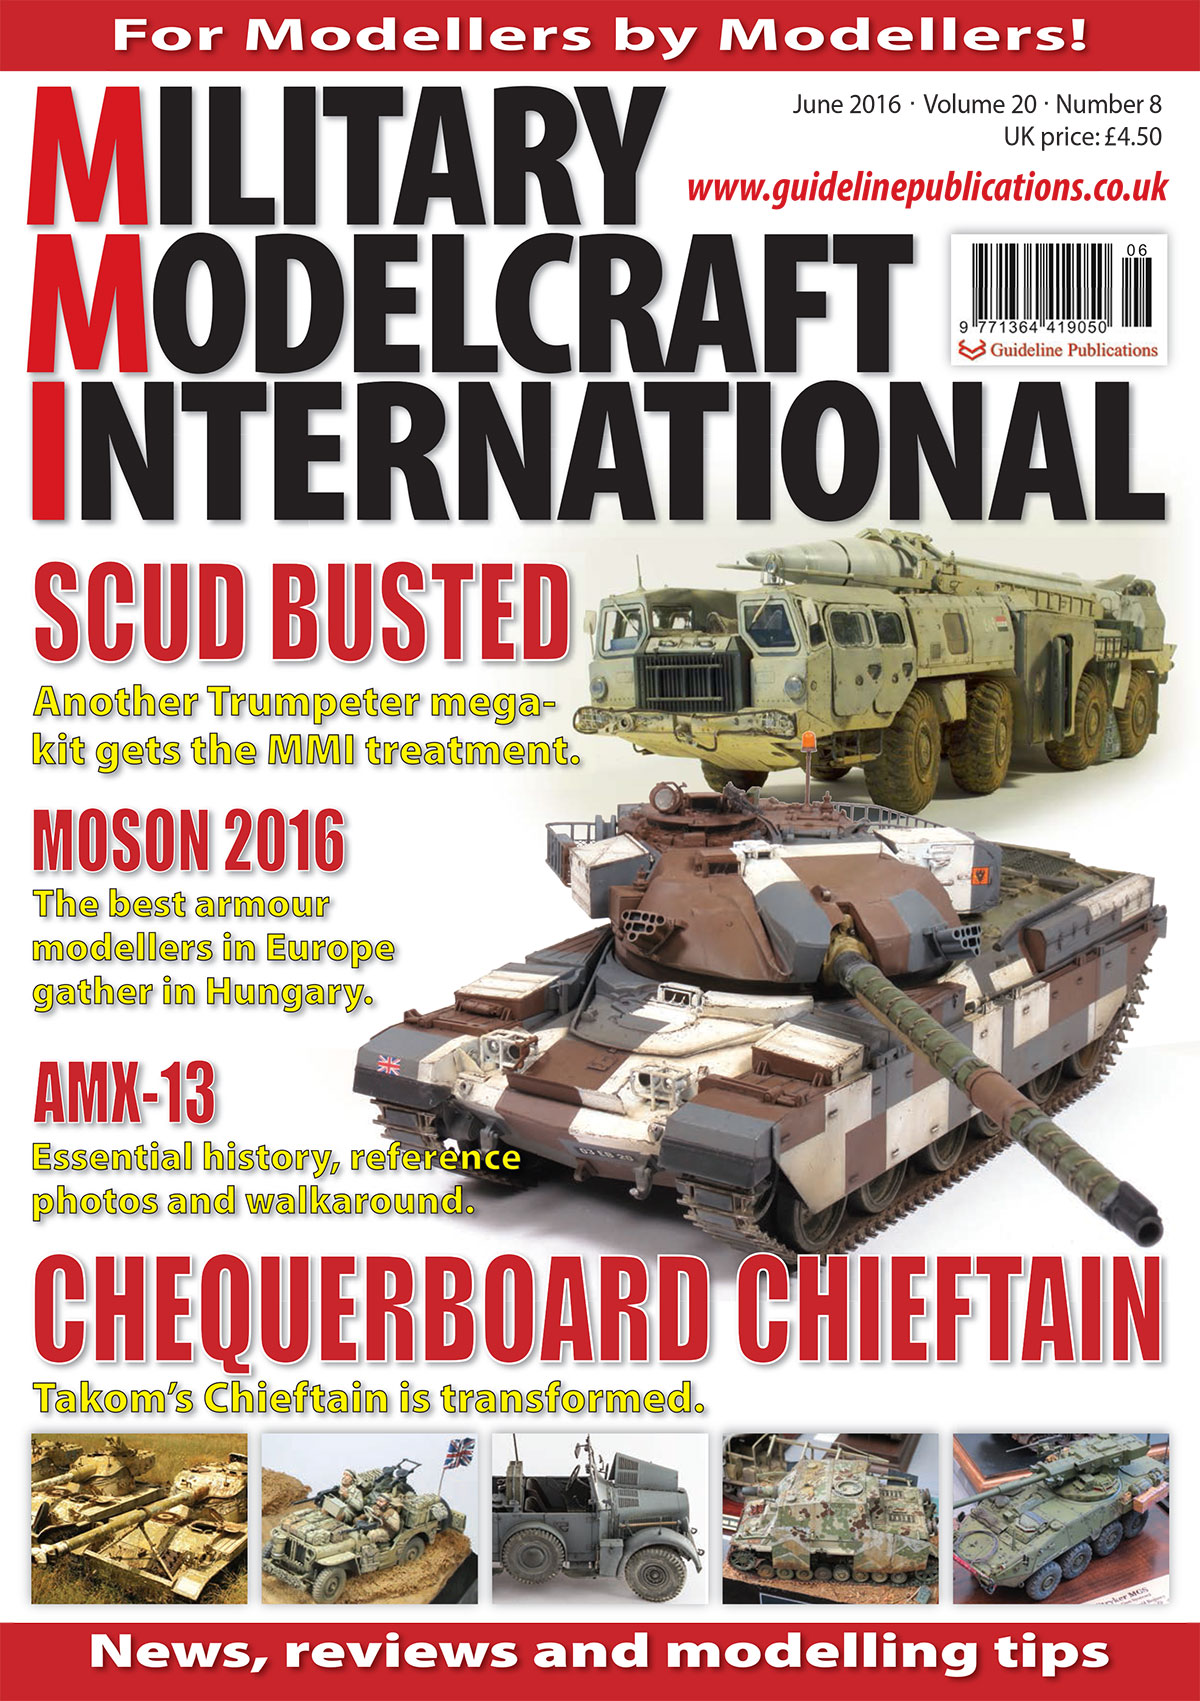 Guideline Publications Military Modelcraft June 2016 vol 20-08